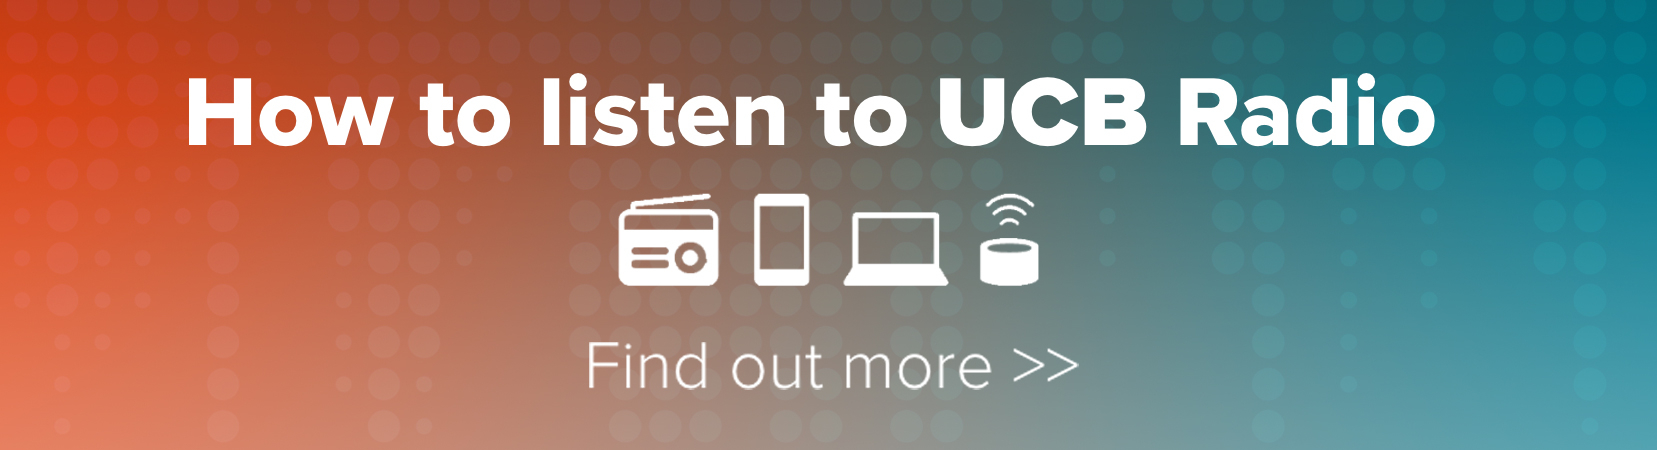 How to listen to UCB Radio - Find out more >>